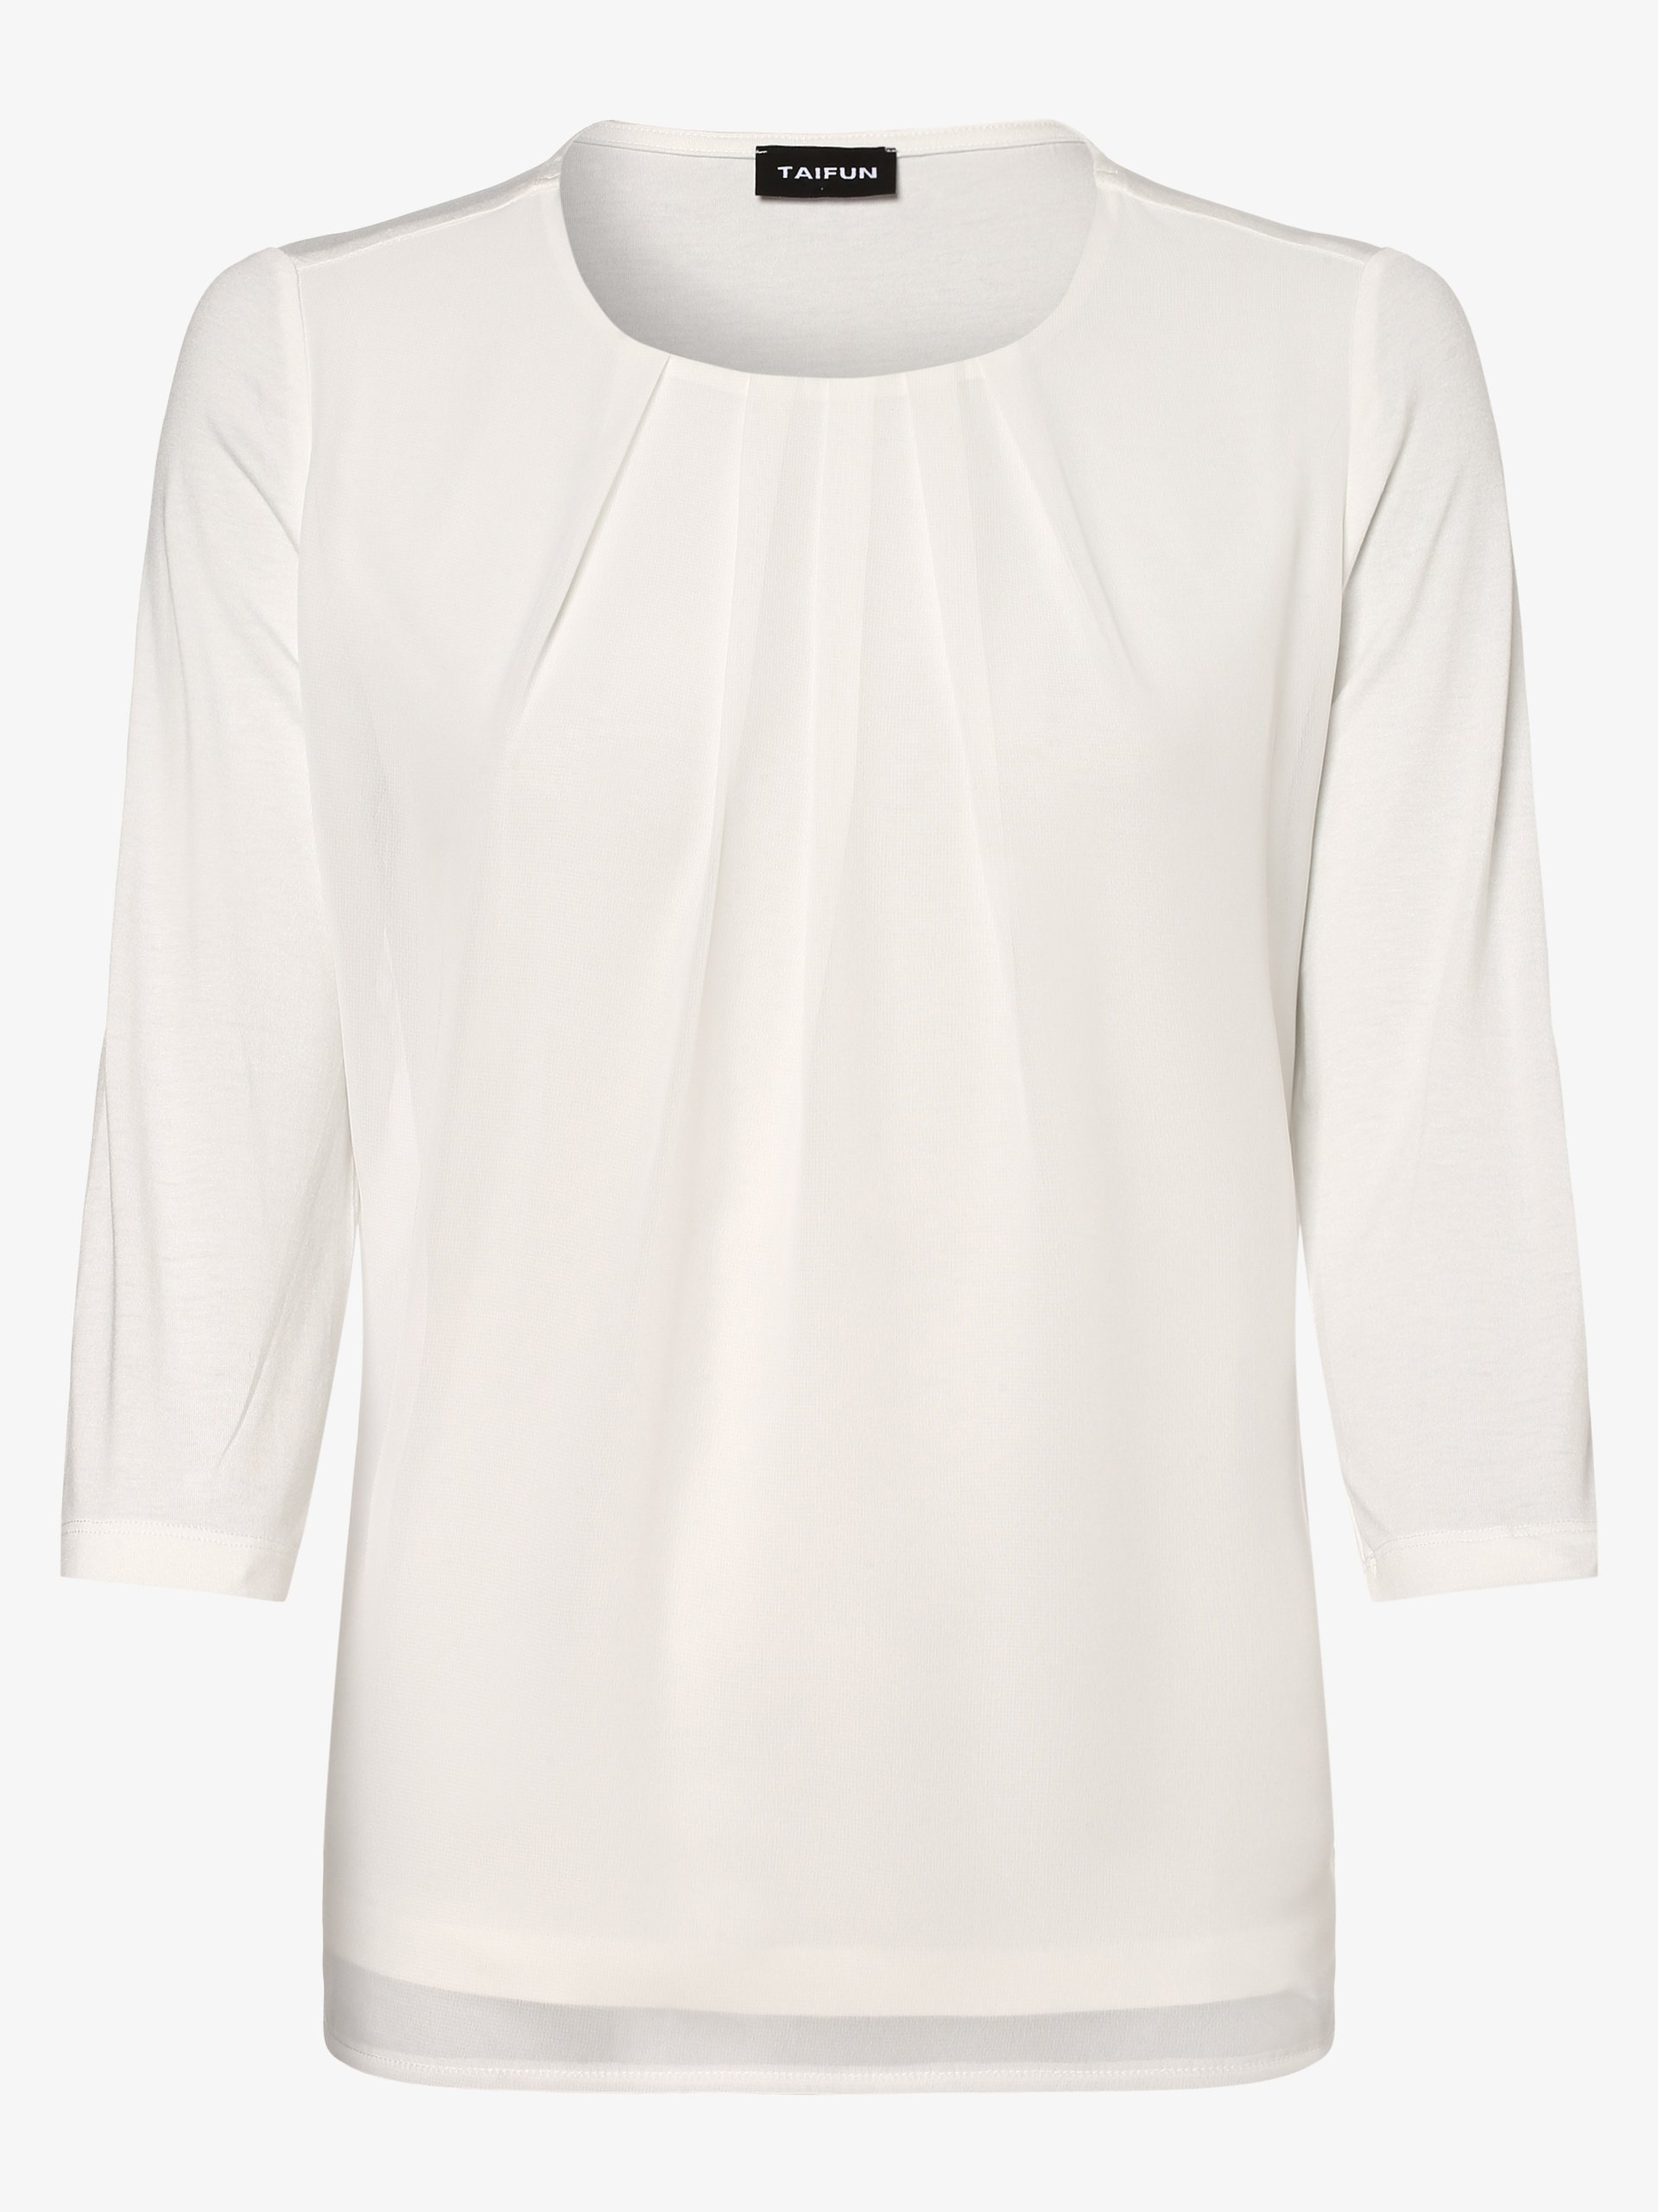 Taifun Damen Shirt